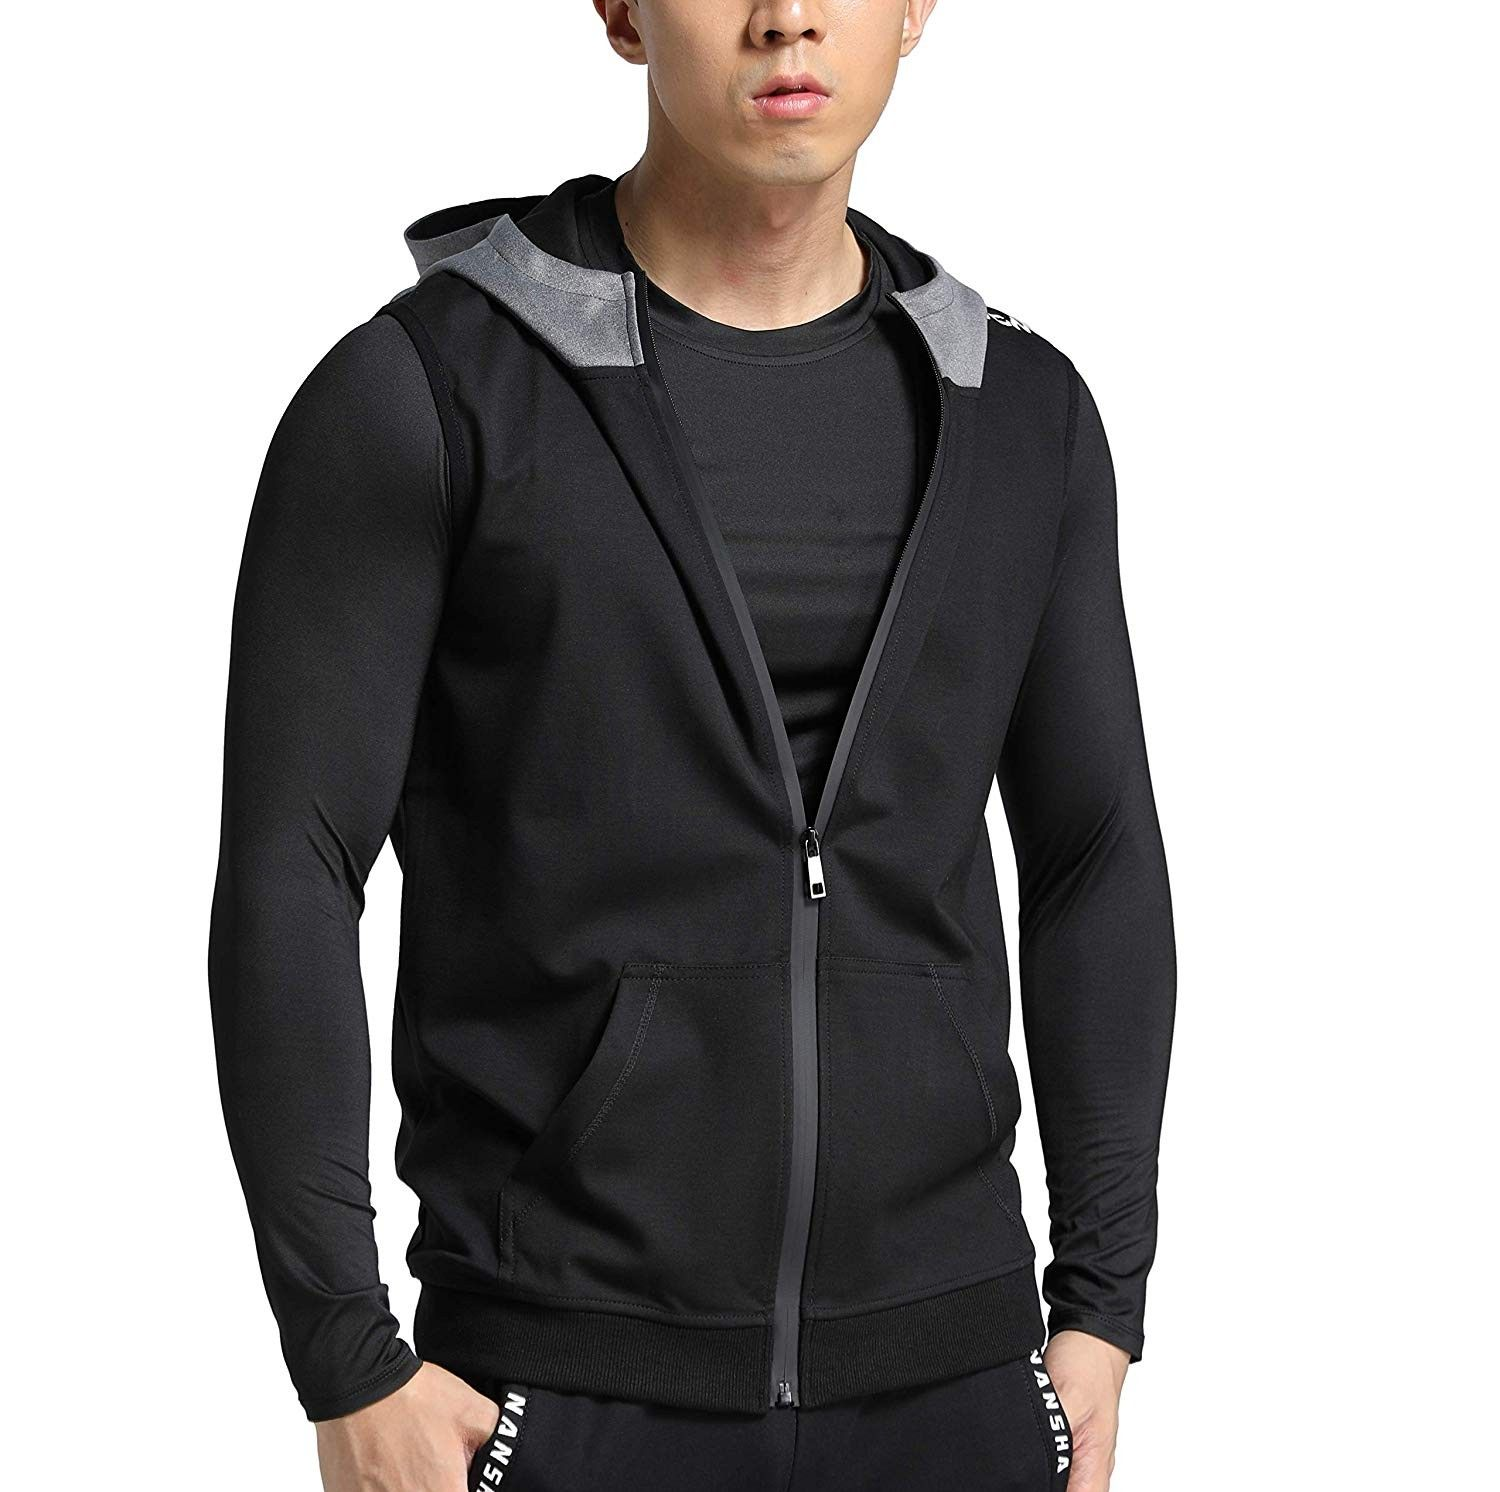 Premium Men's Fit Sleeveless Hoodie - Mens Workout Hooded Tank Tops Sleeveless Gym Hoodies - Figure...